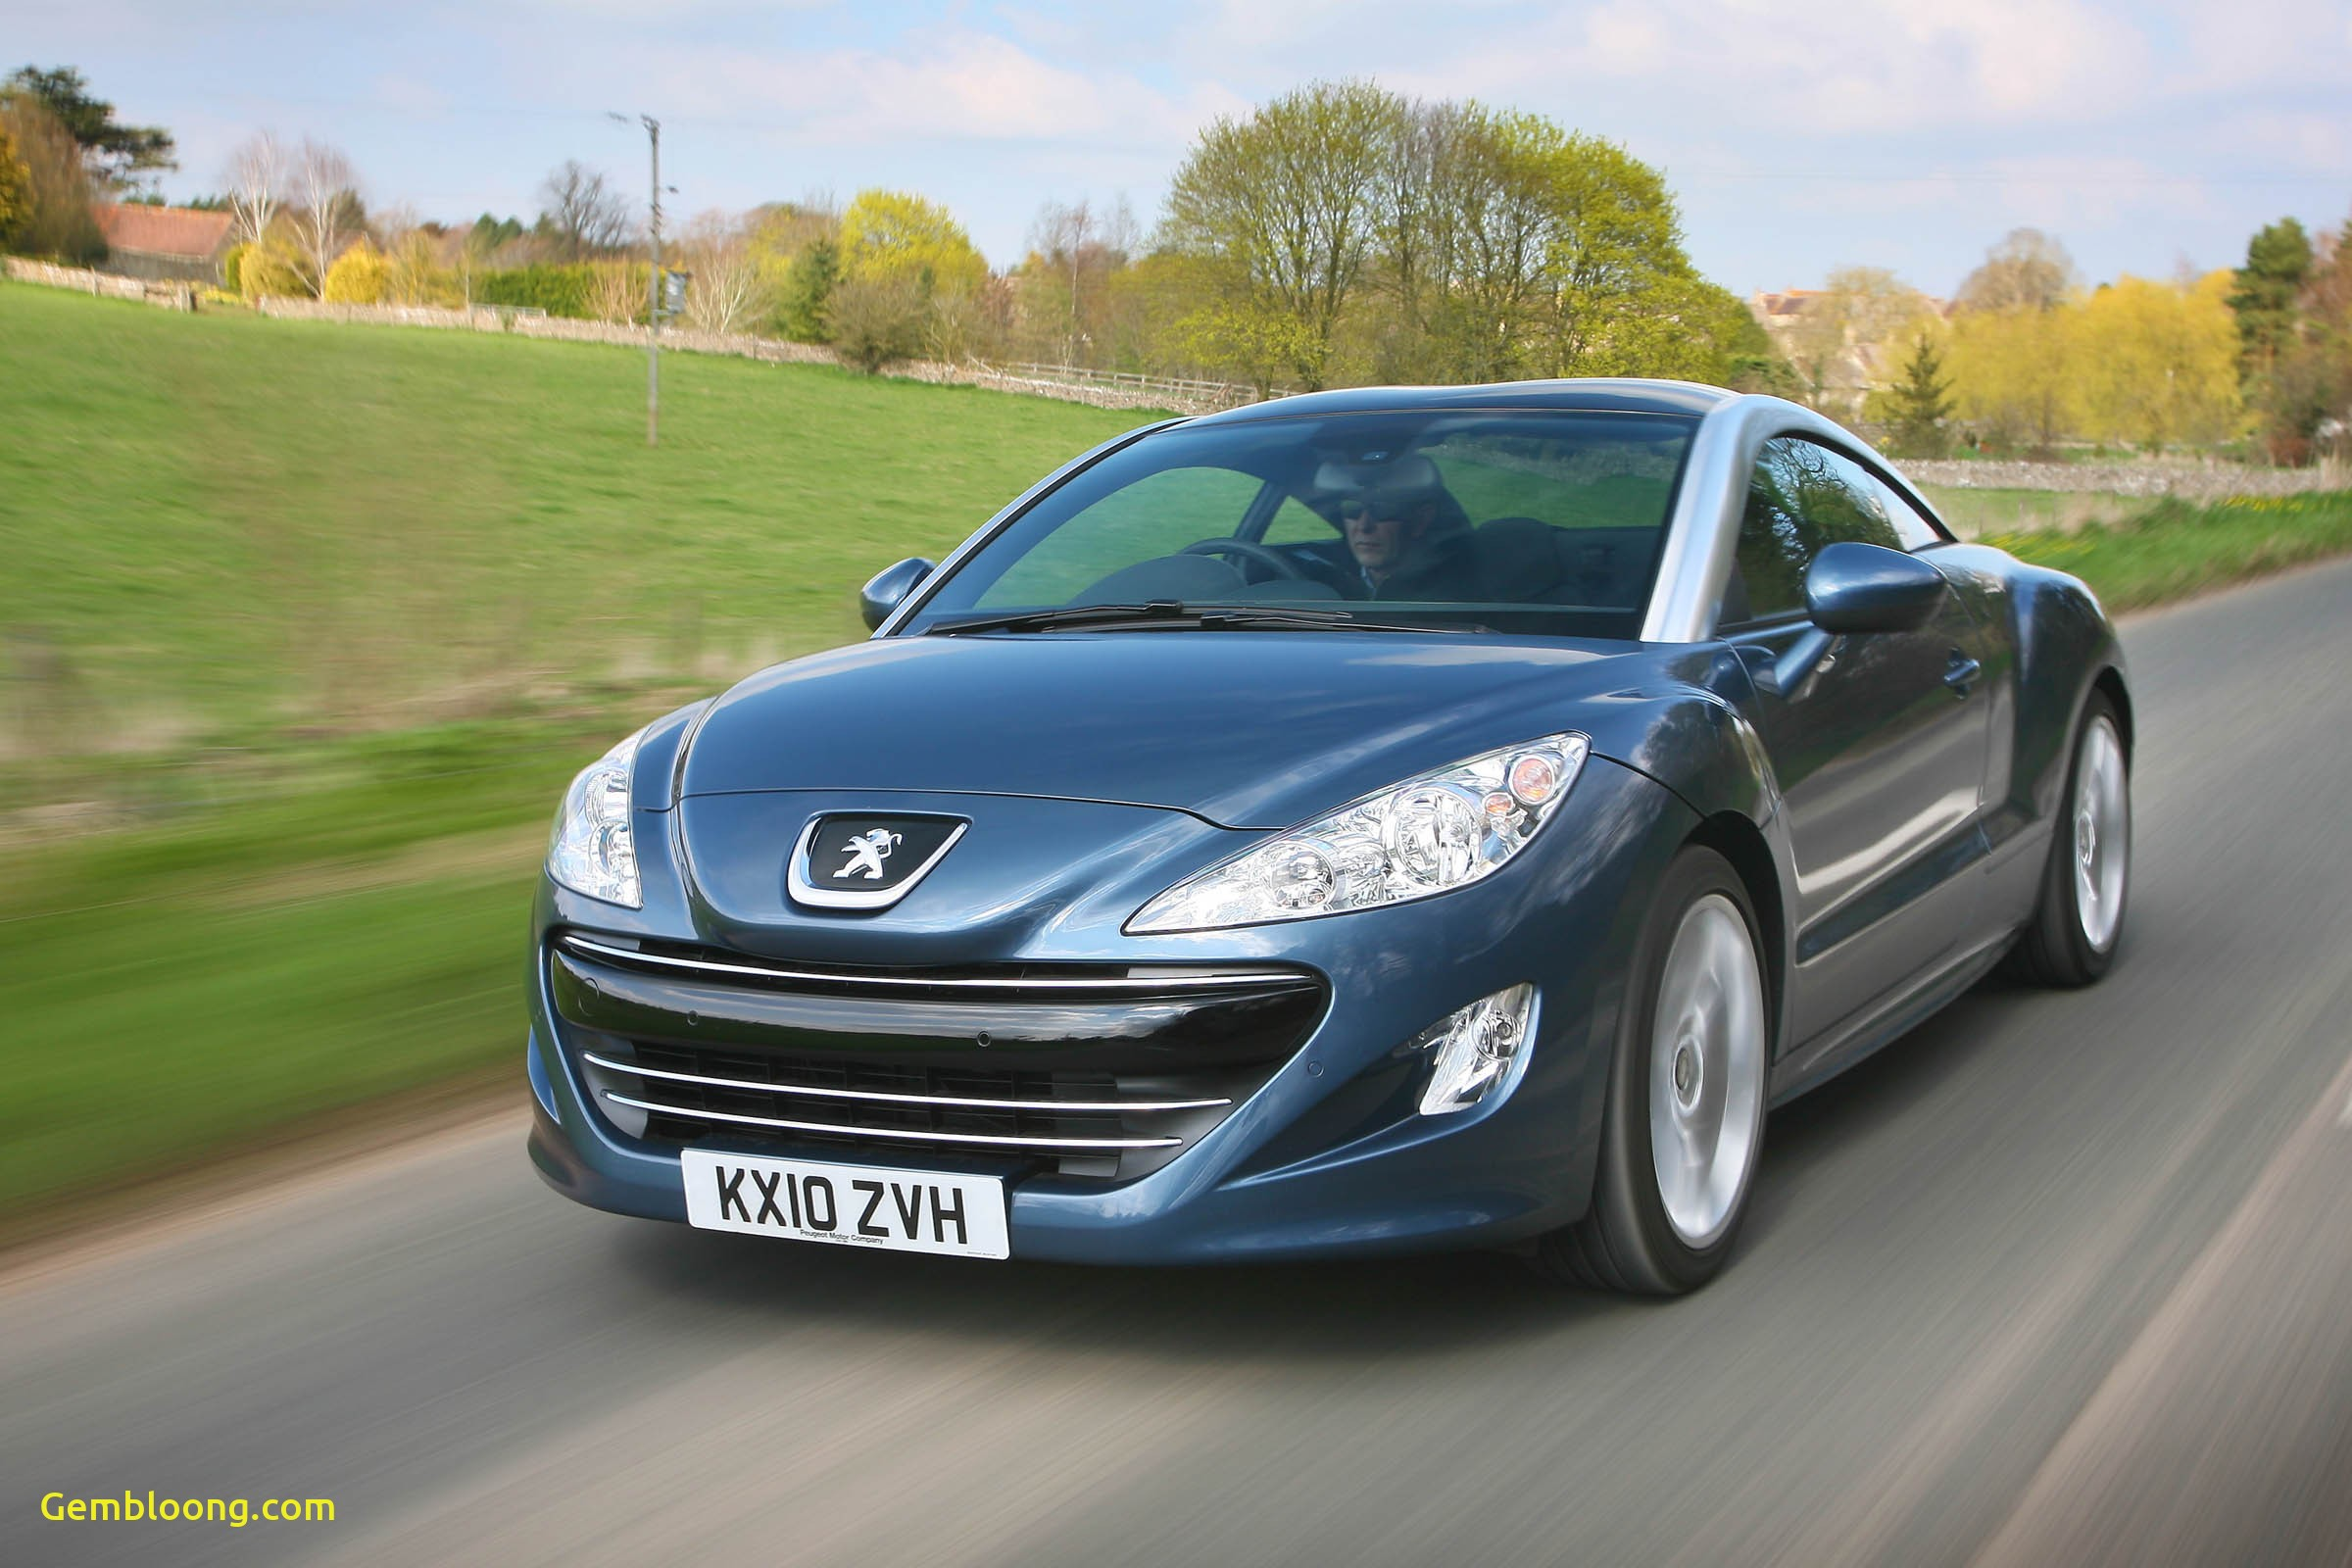 Cheap Used Cars for Sale Near Me Under 1000 Lovely Cheap Fun Cars Our Used Sporty Car Picks From £1 000 to